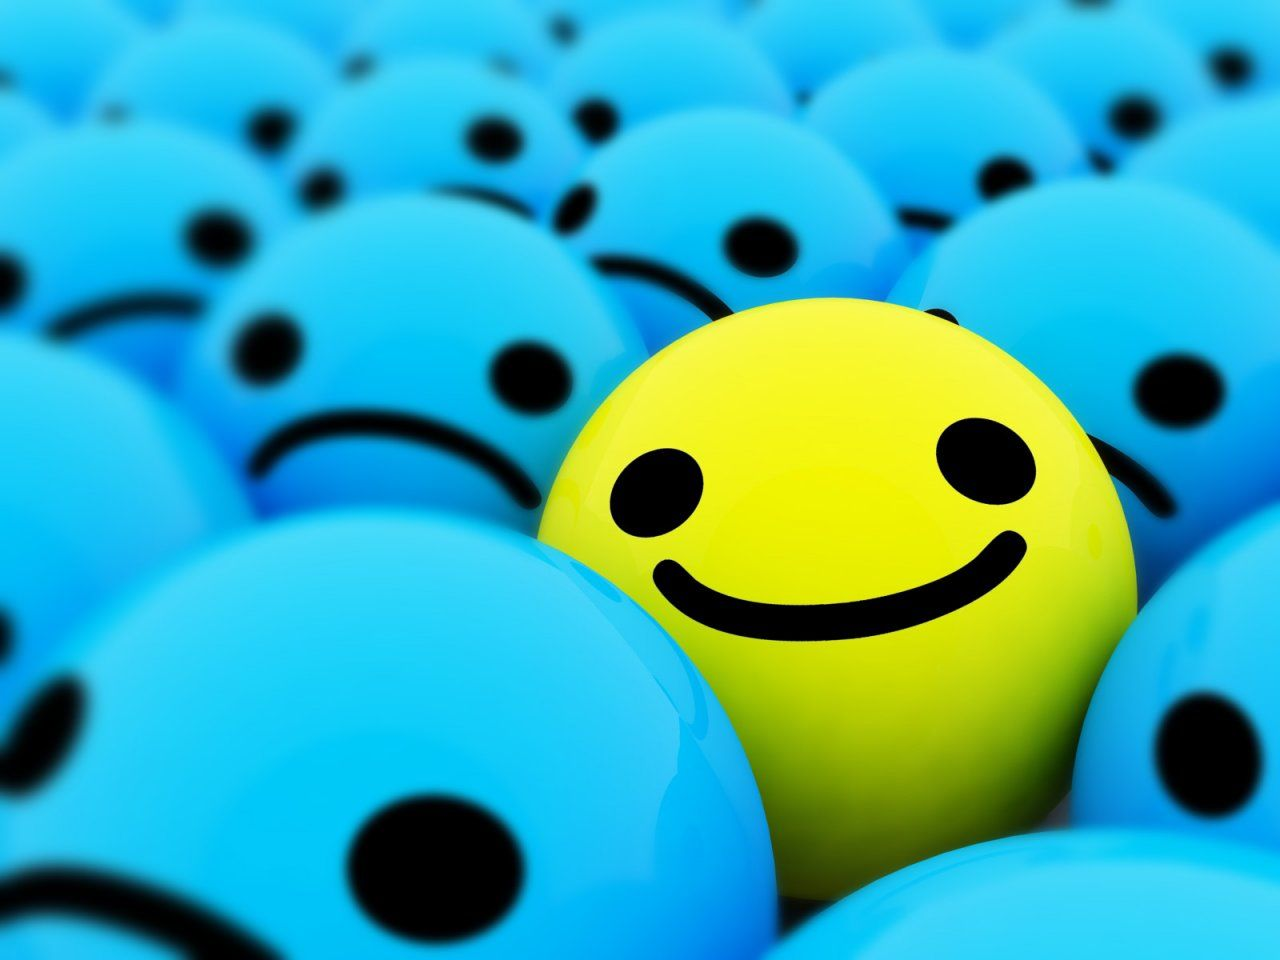 How To Be Happy And Change Your Frown To A Smile - A Self Help Book